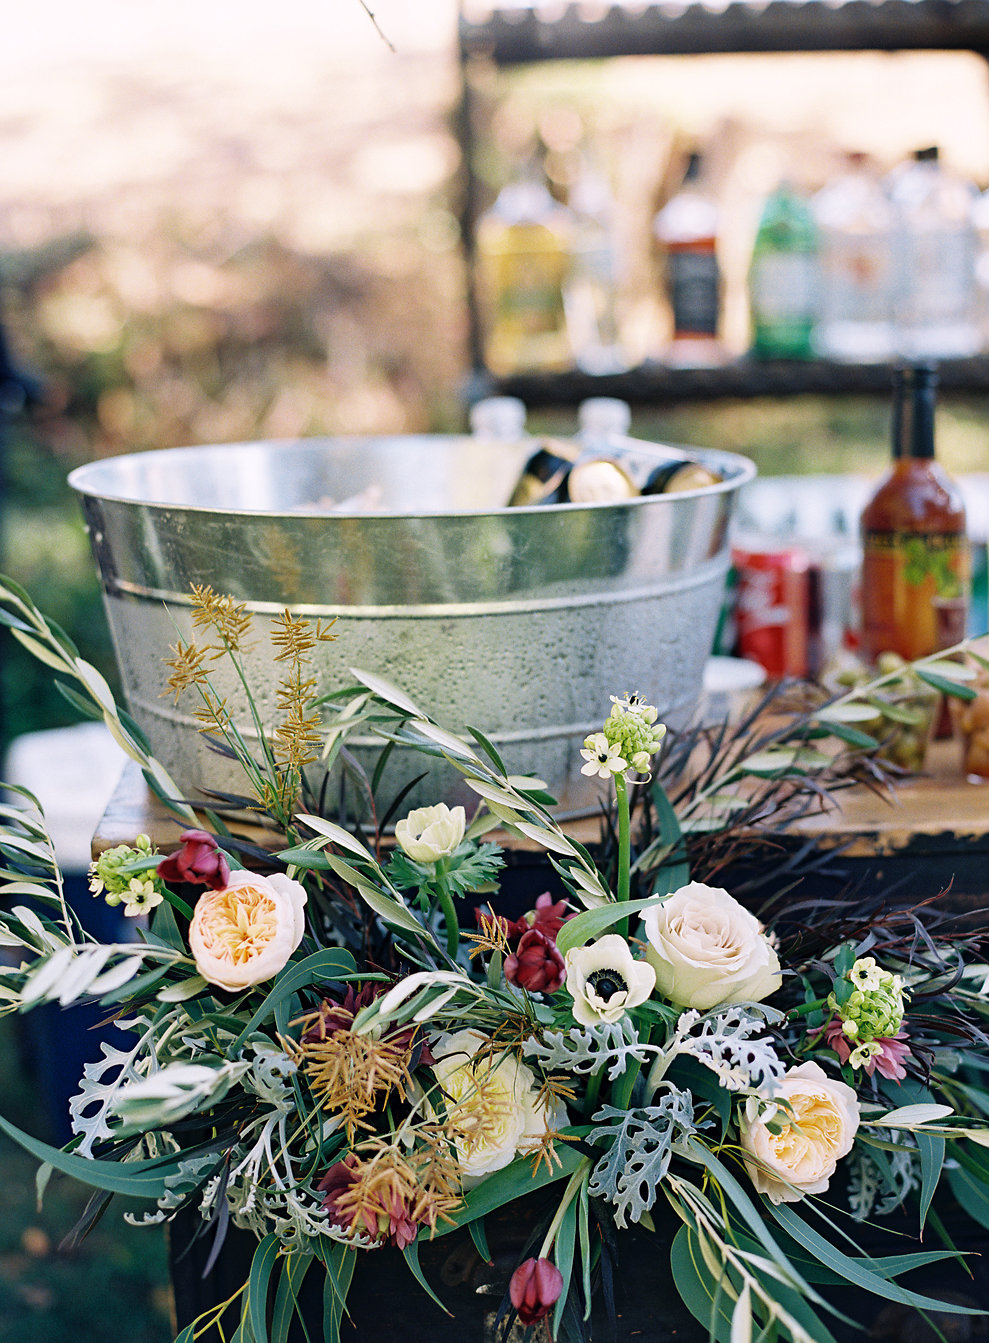 West Marin Wedding with Venn Floral, Laura Catherine Photography, and Joyeux Events at Straus Home Ranch.